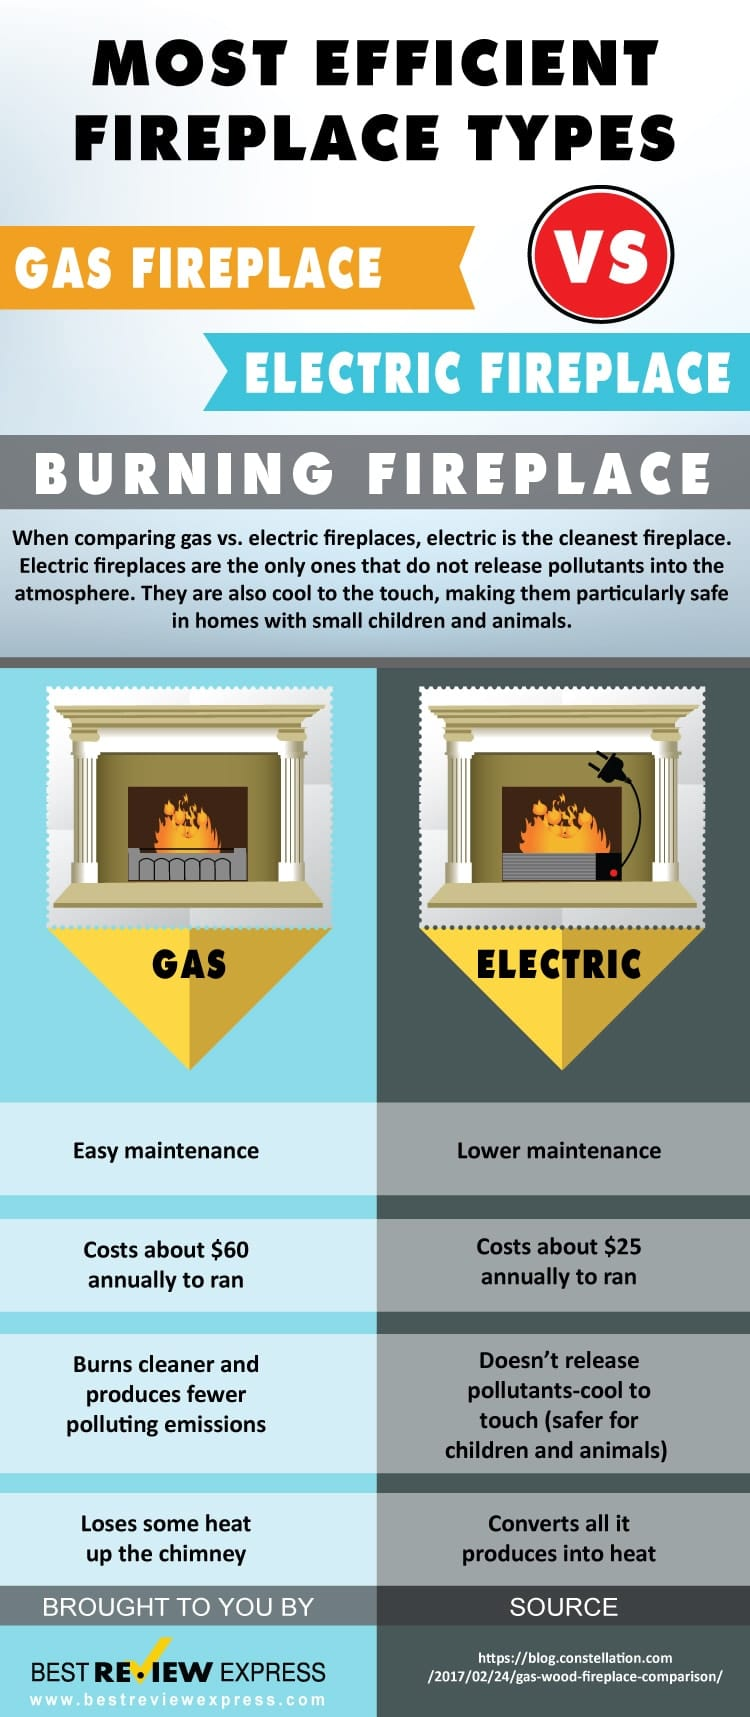 Most Efficient Fireplace Types